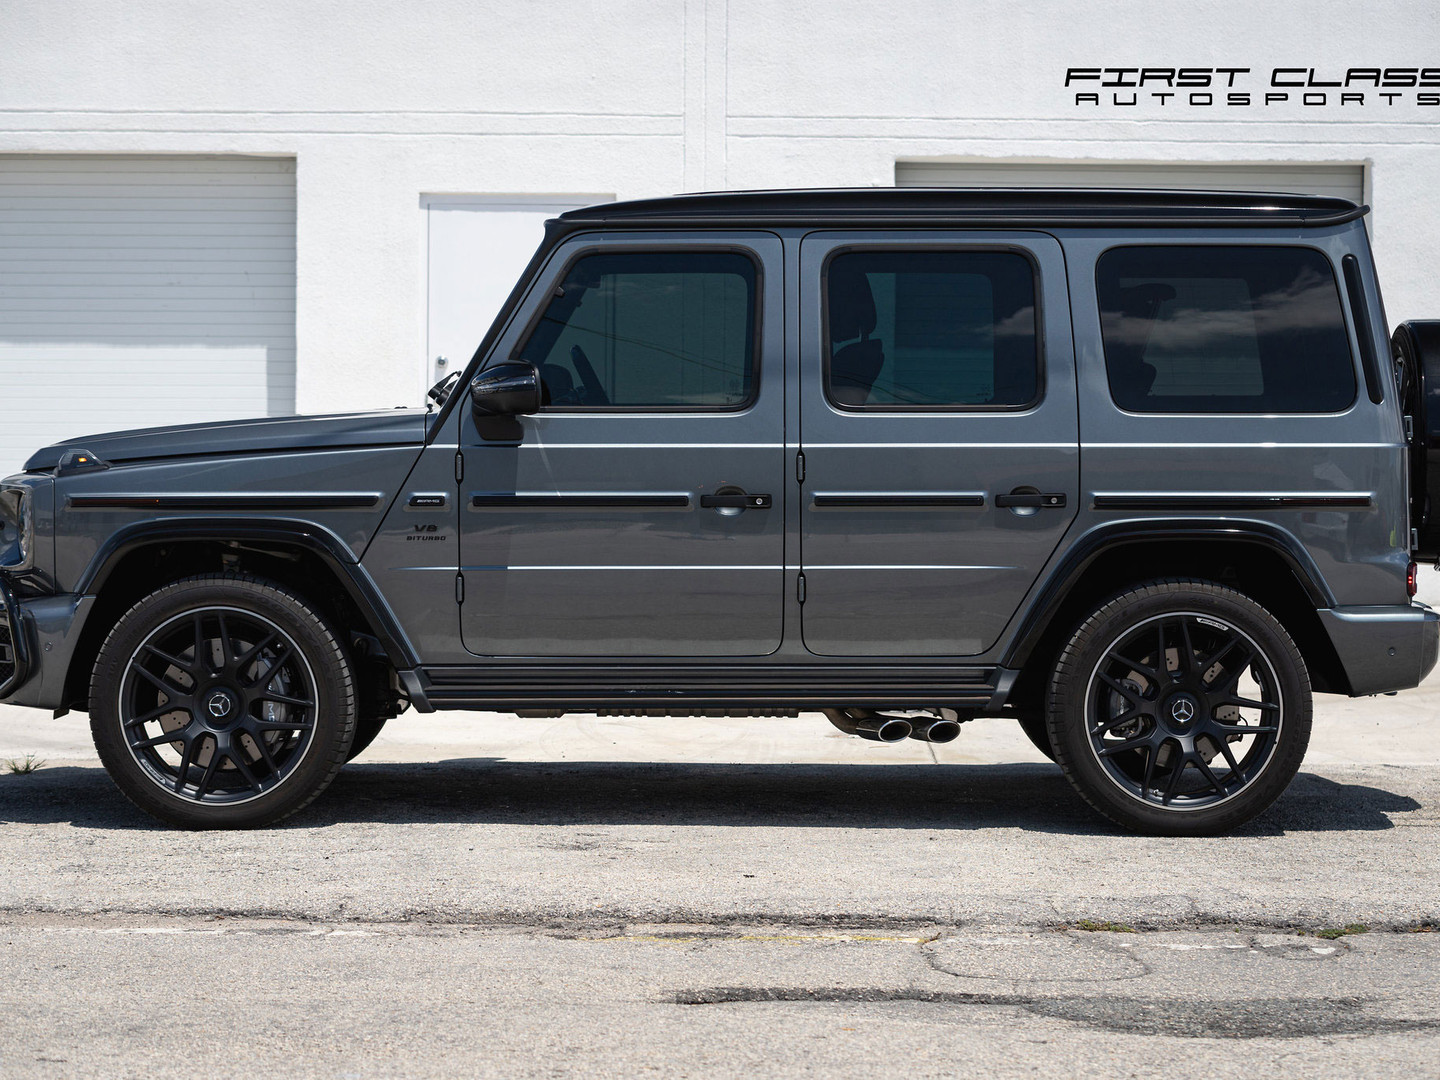 Mercedes Benz G-class Paint Protection Film, Window Tinting and Ceramic Coating Miami